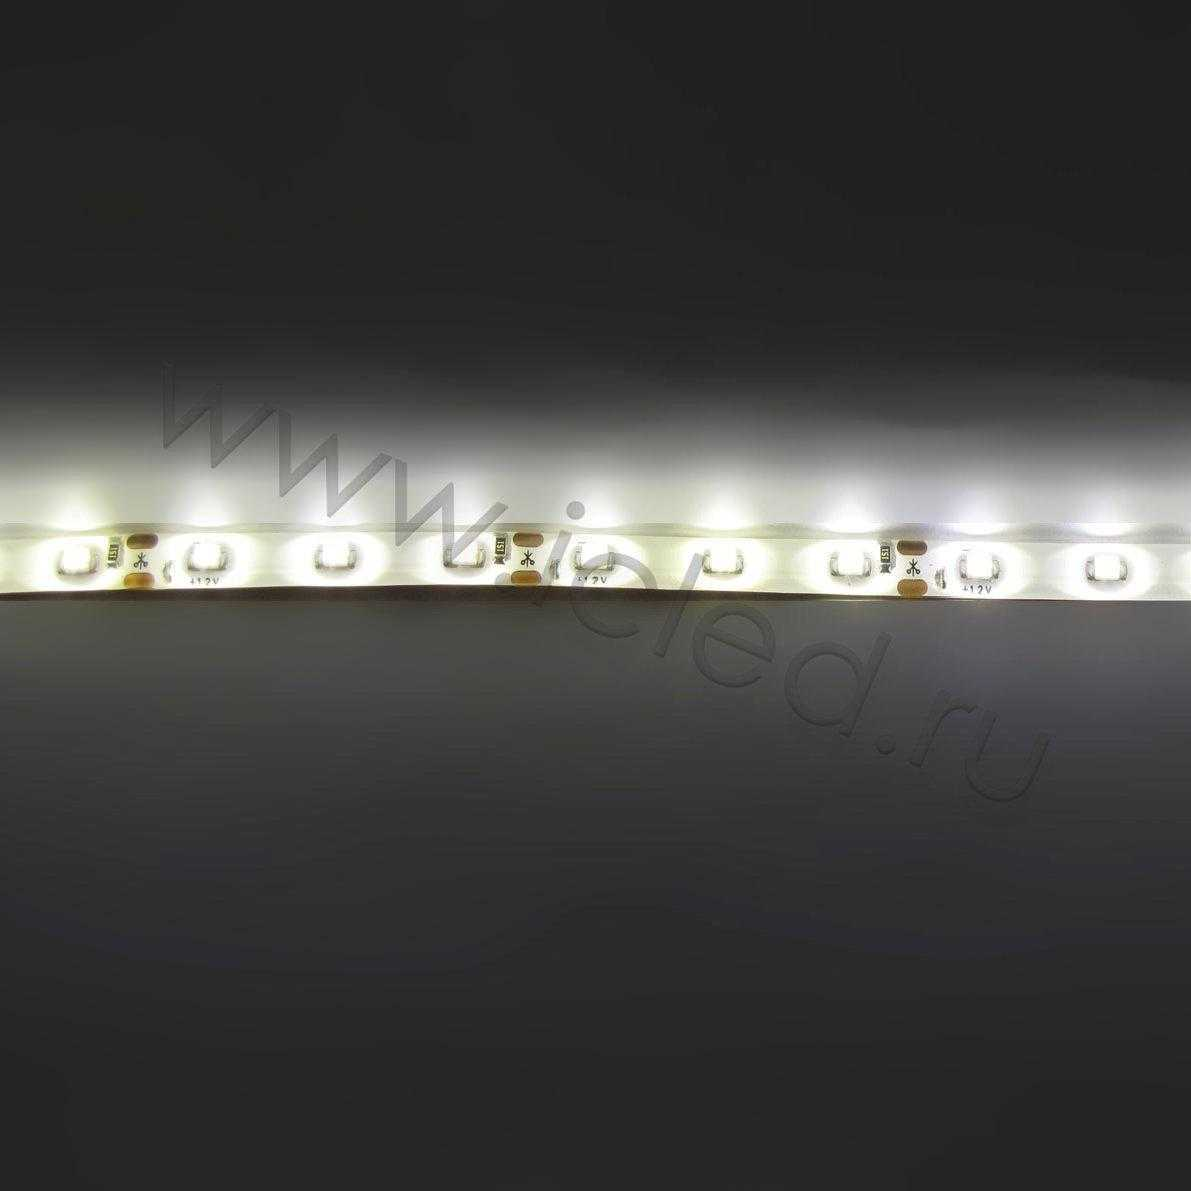 Светодиодная лента Standart class, 3528, 60led/m, Warm White, 12V, IP65